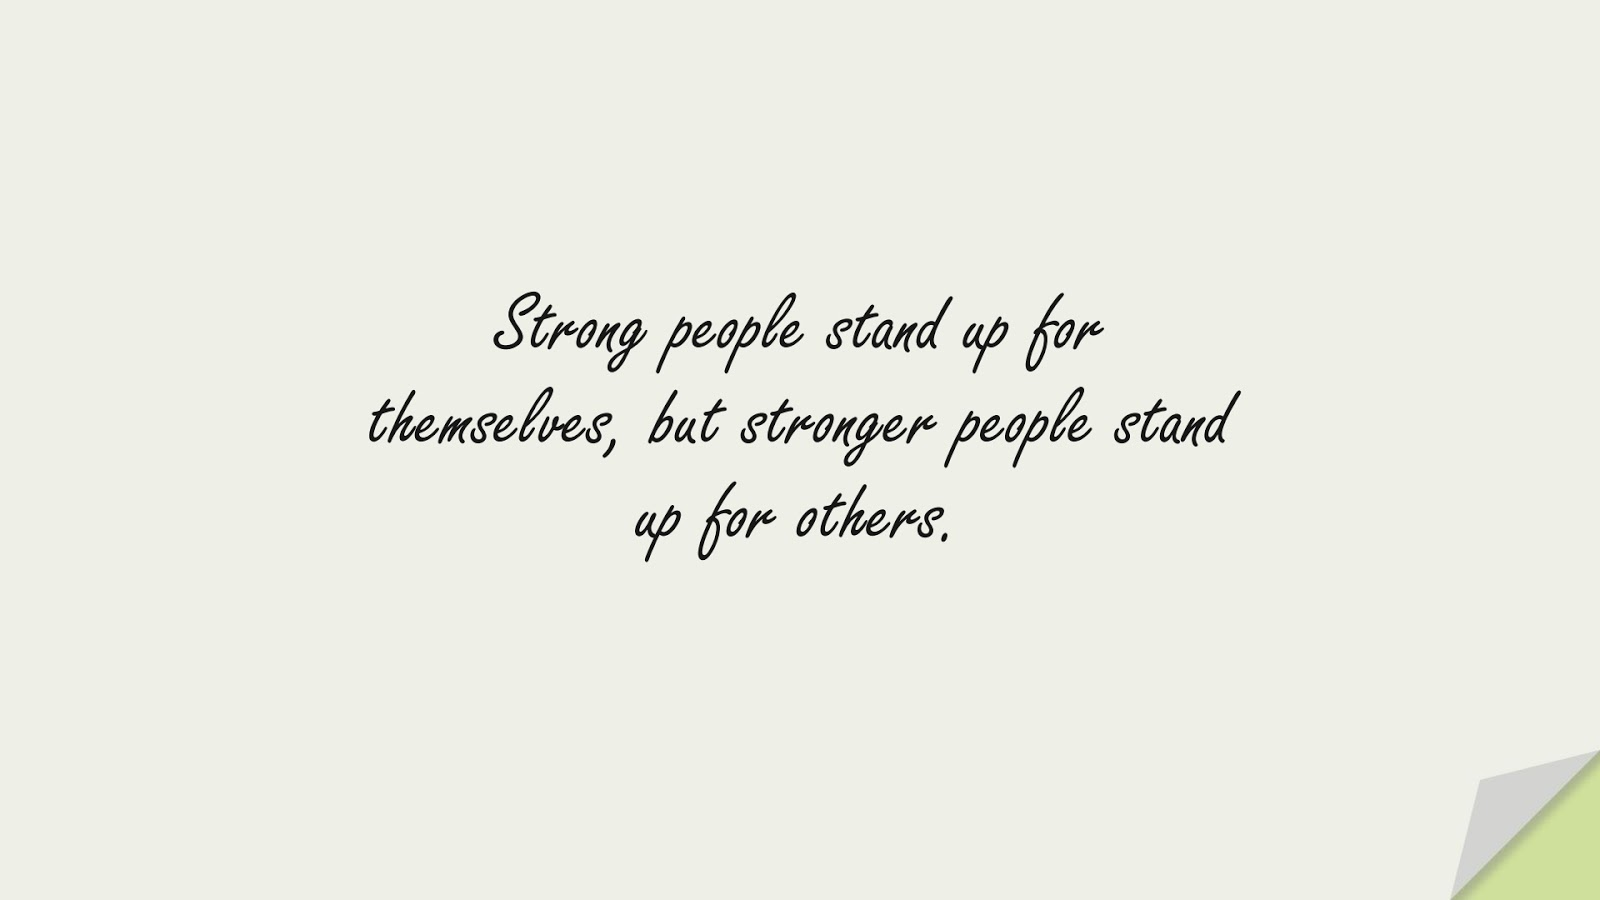 Strong people stand up for themselves, but stronger people stand up for others.FALSE